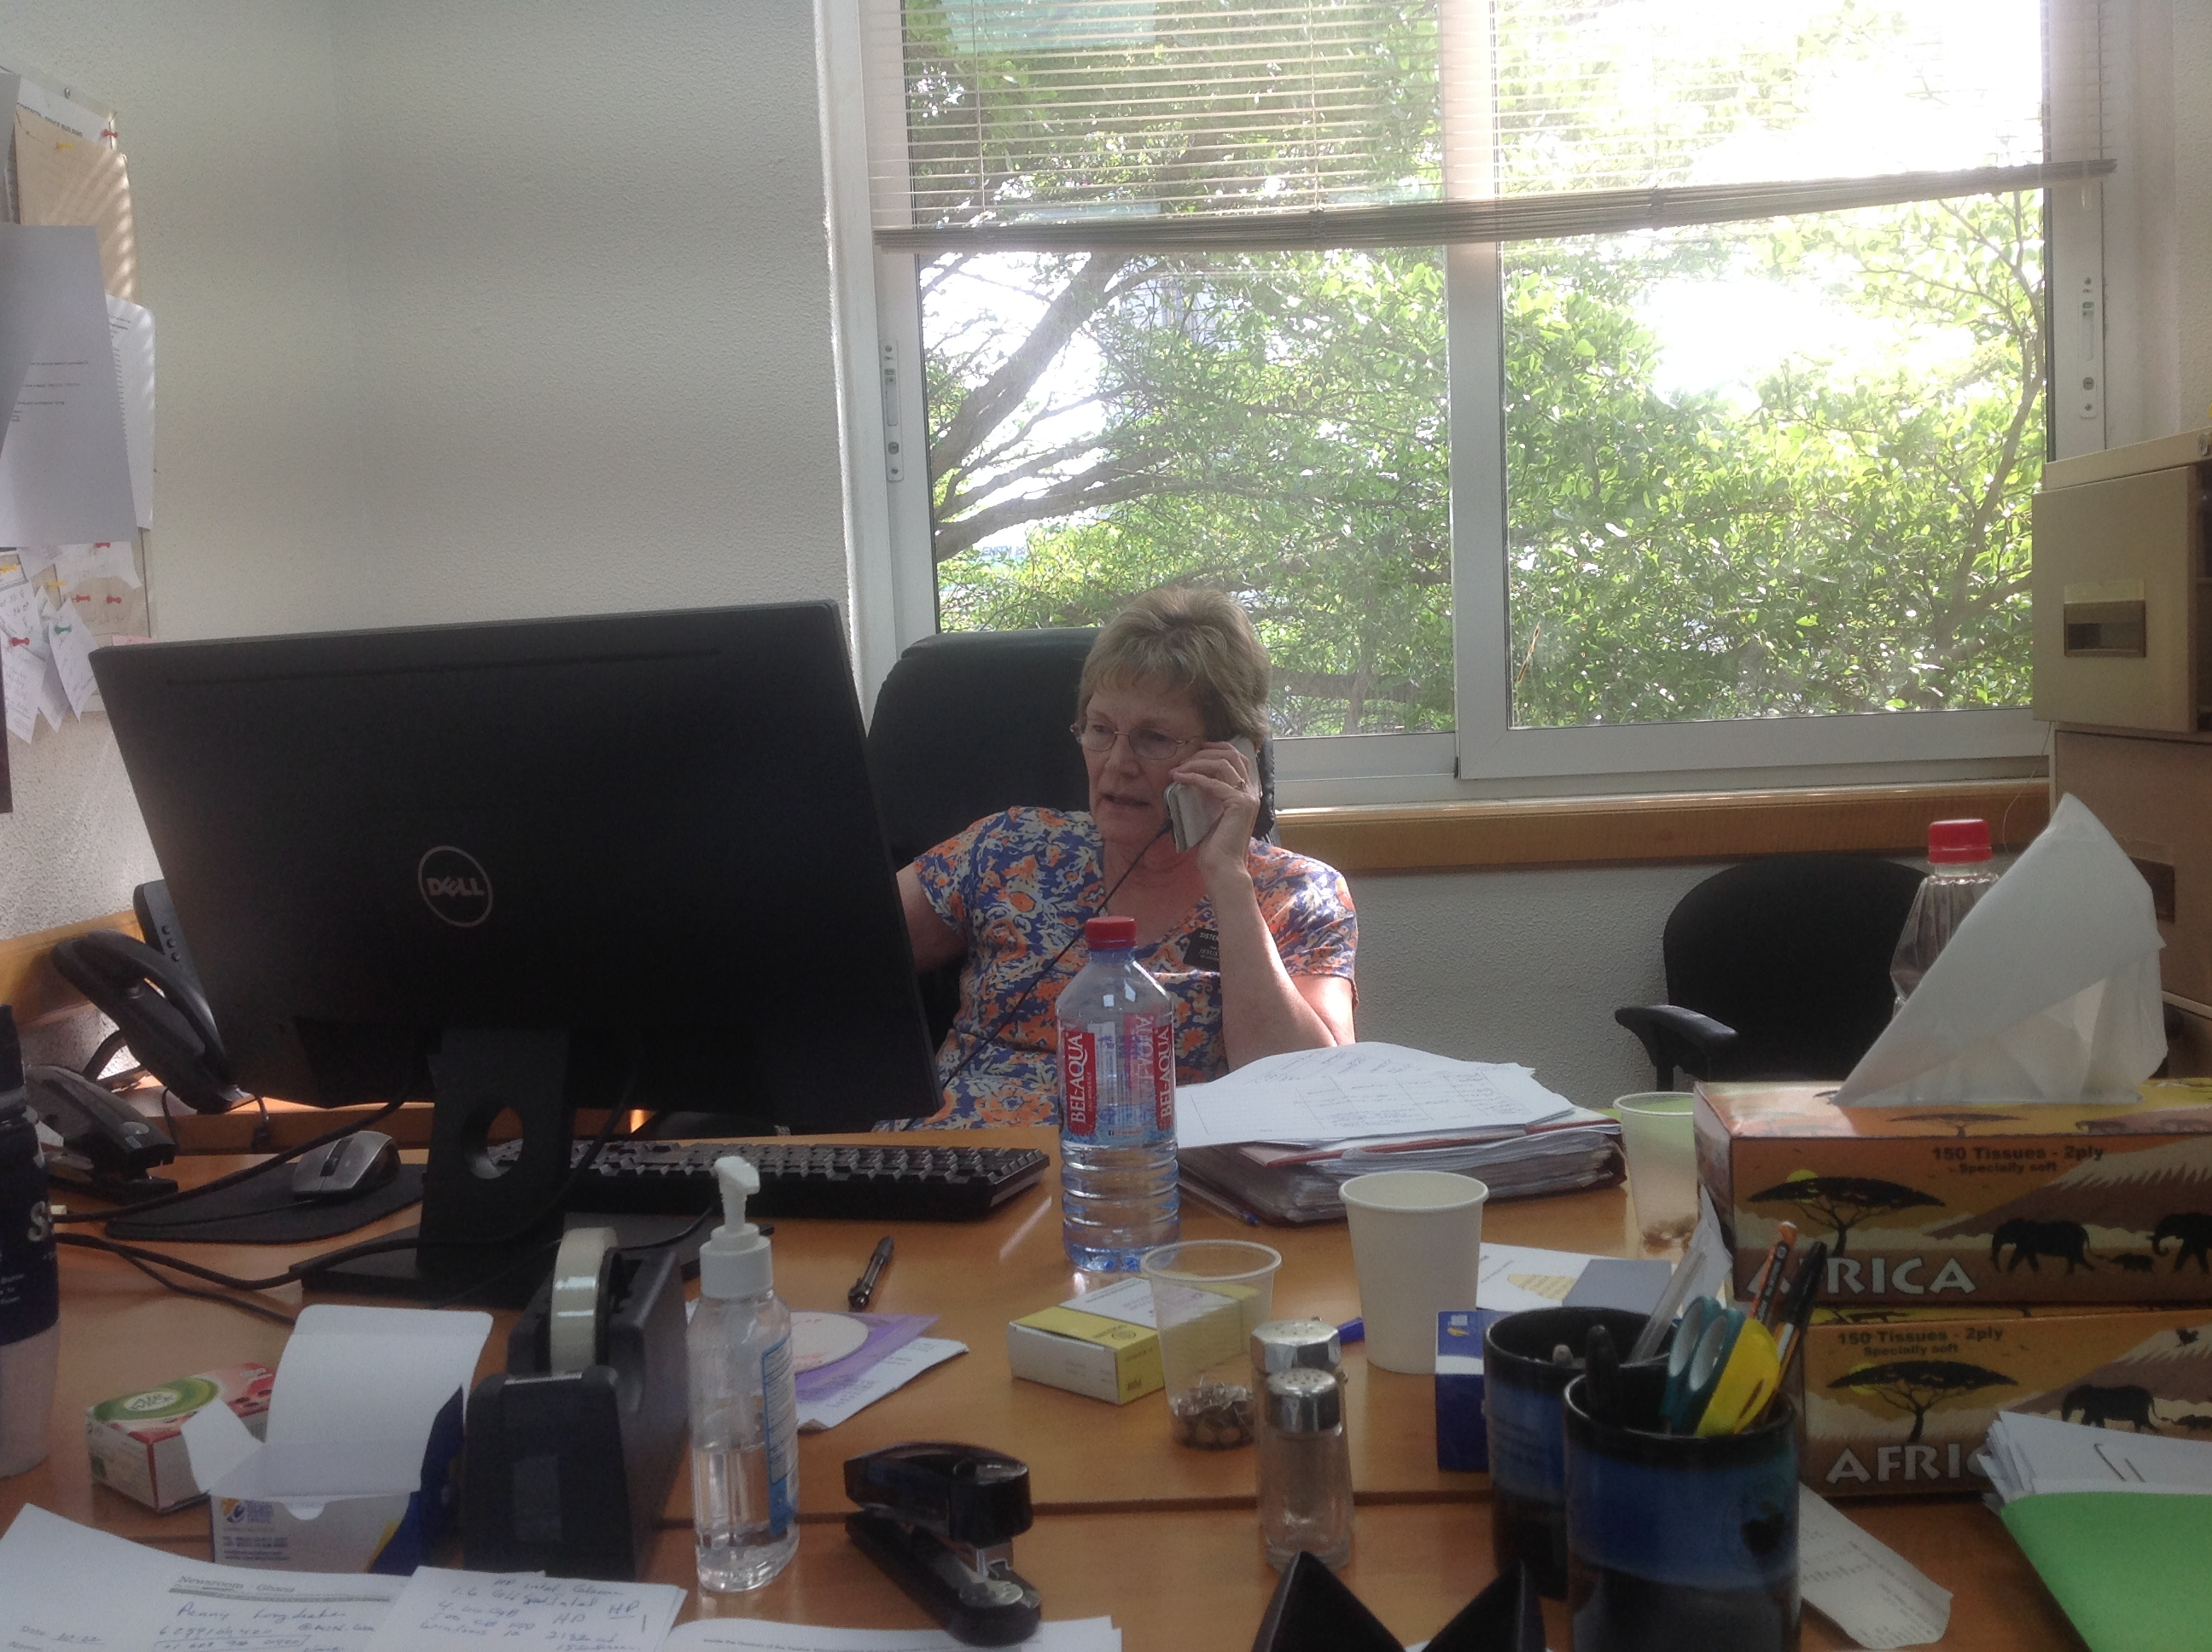 Sister Elizabeth Blackwell conducts phone consultations on her most recent mission in the Africa West Area.